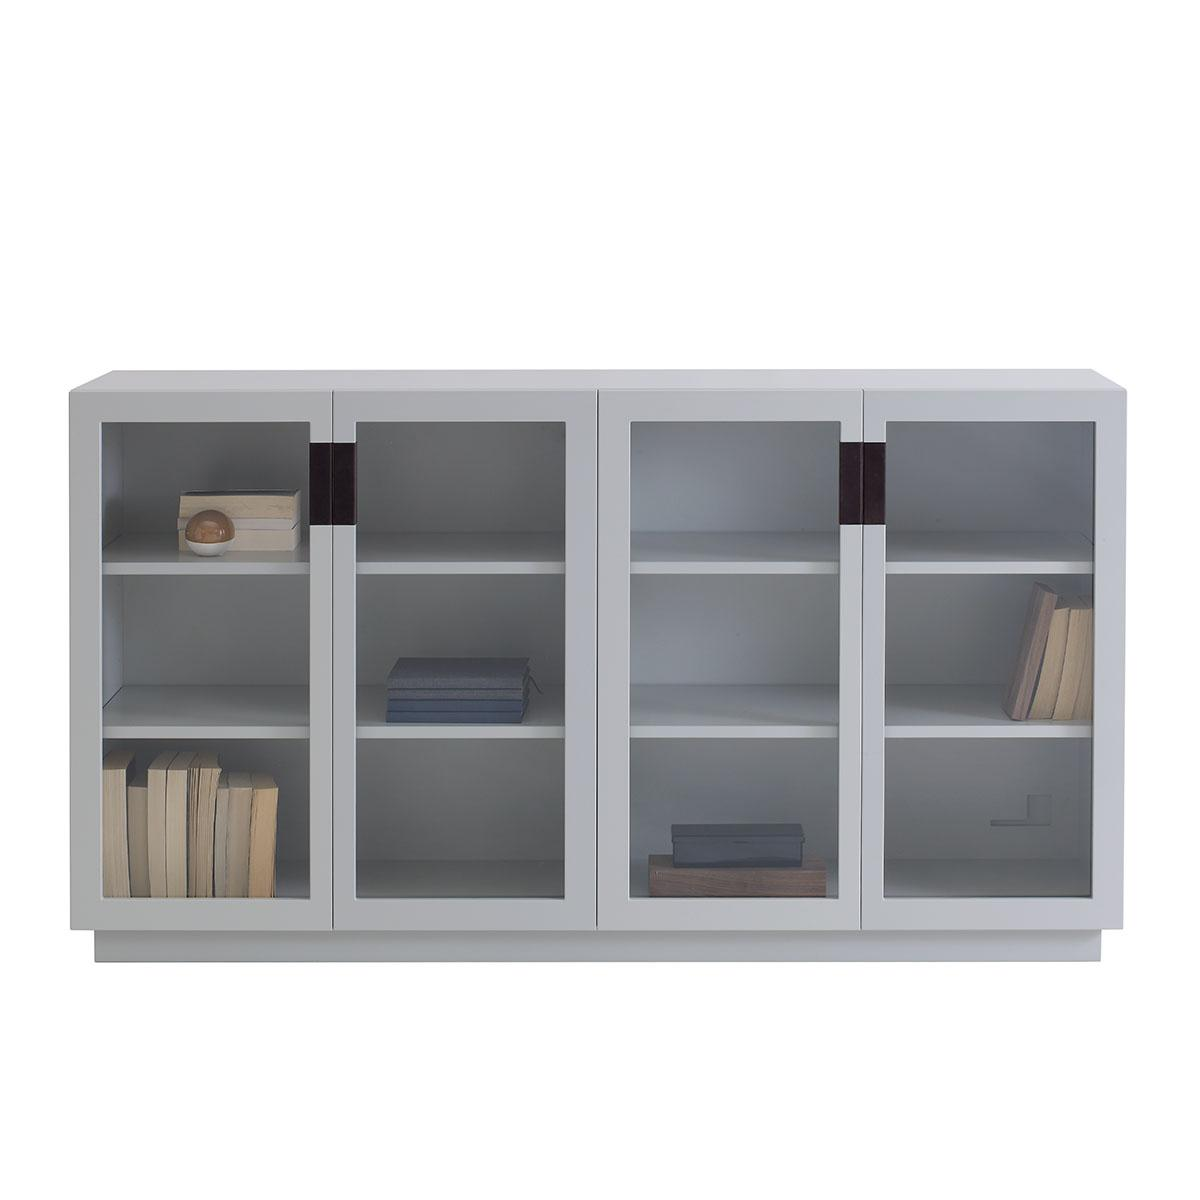 Frame glass cabinet_0000_FRAME_160_MEDIUM_GLASS_05_Light_Grey_Asplund_02